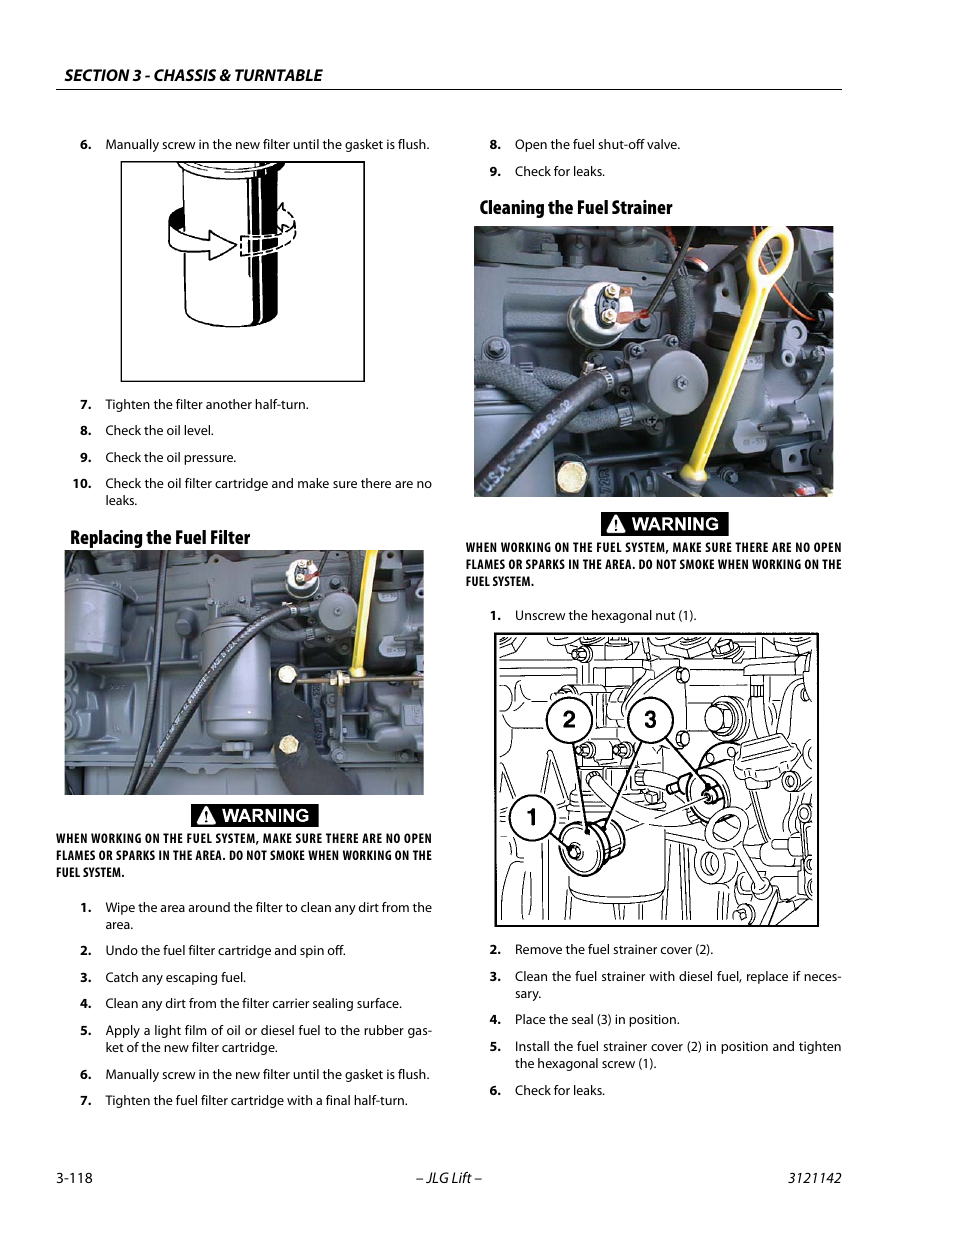 Replacing the fuel filter, Cleaning the fuel strainer | JLG 1350SJP Service  Manual User Manual | Page 164 / 554